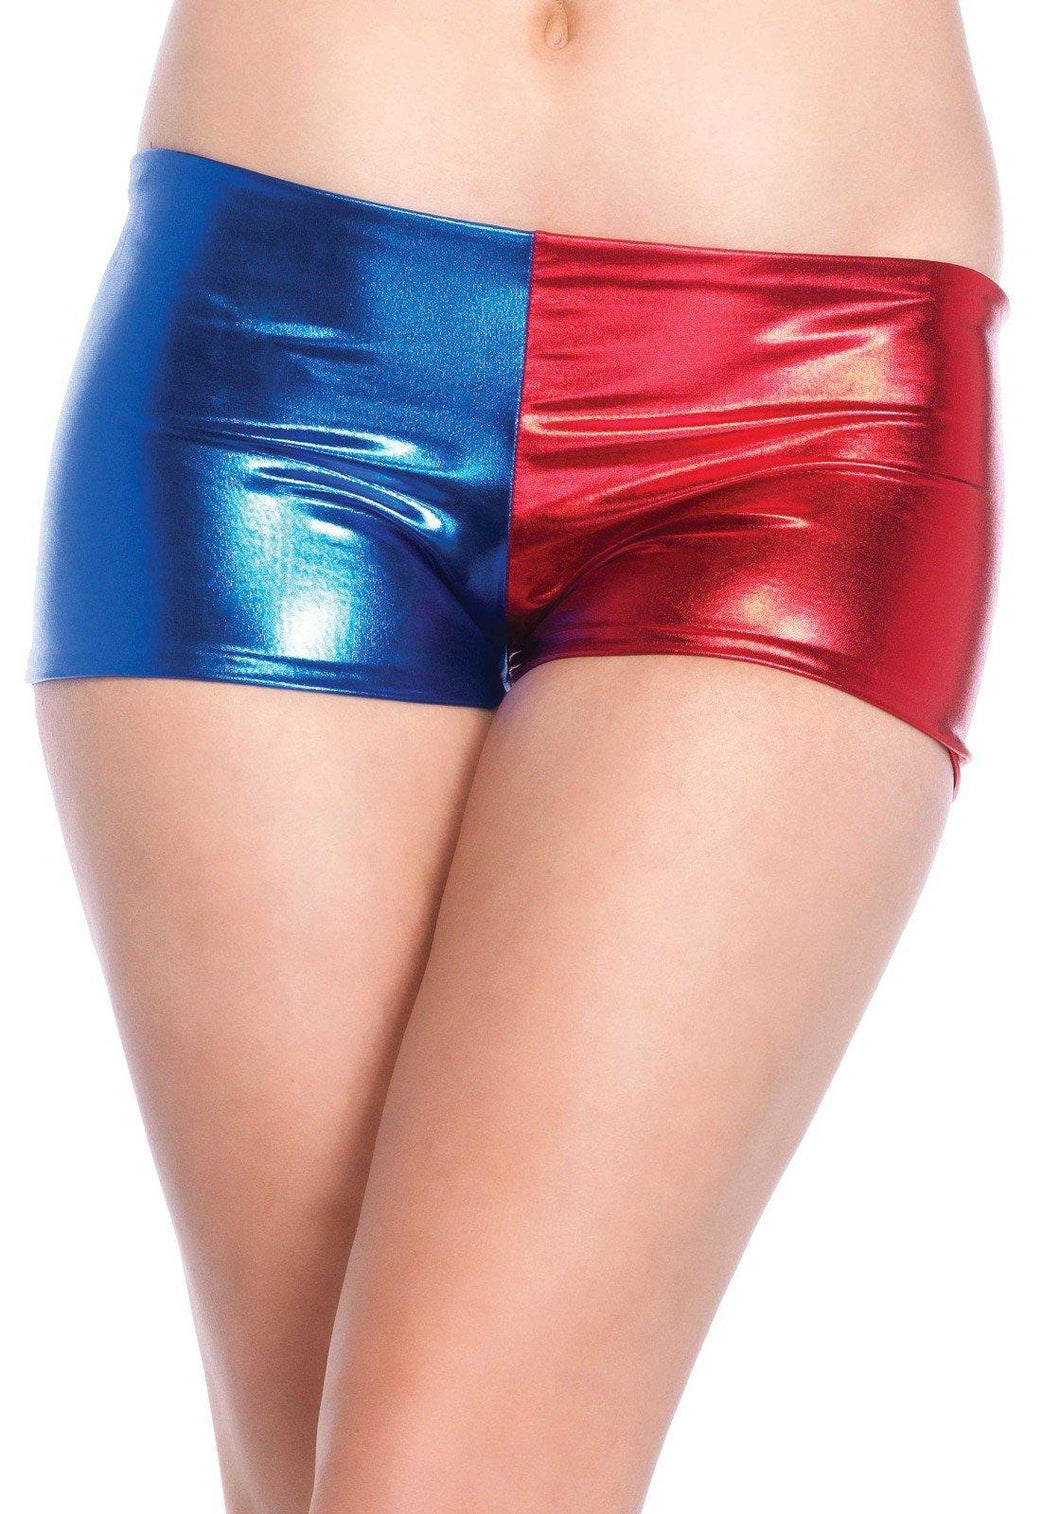 Blue/Red Harlequin Misfit Booty Shorts - Amore Lingerie